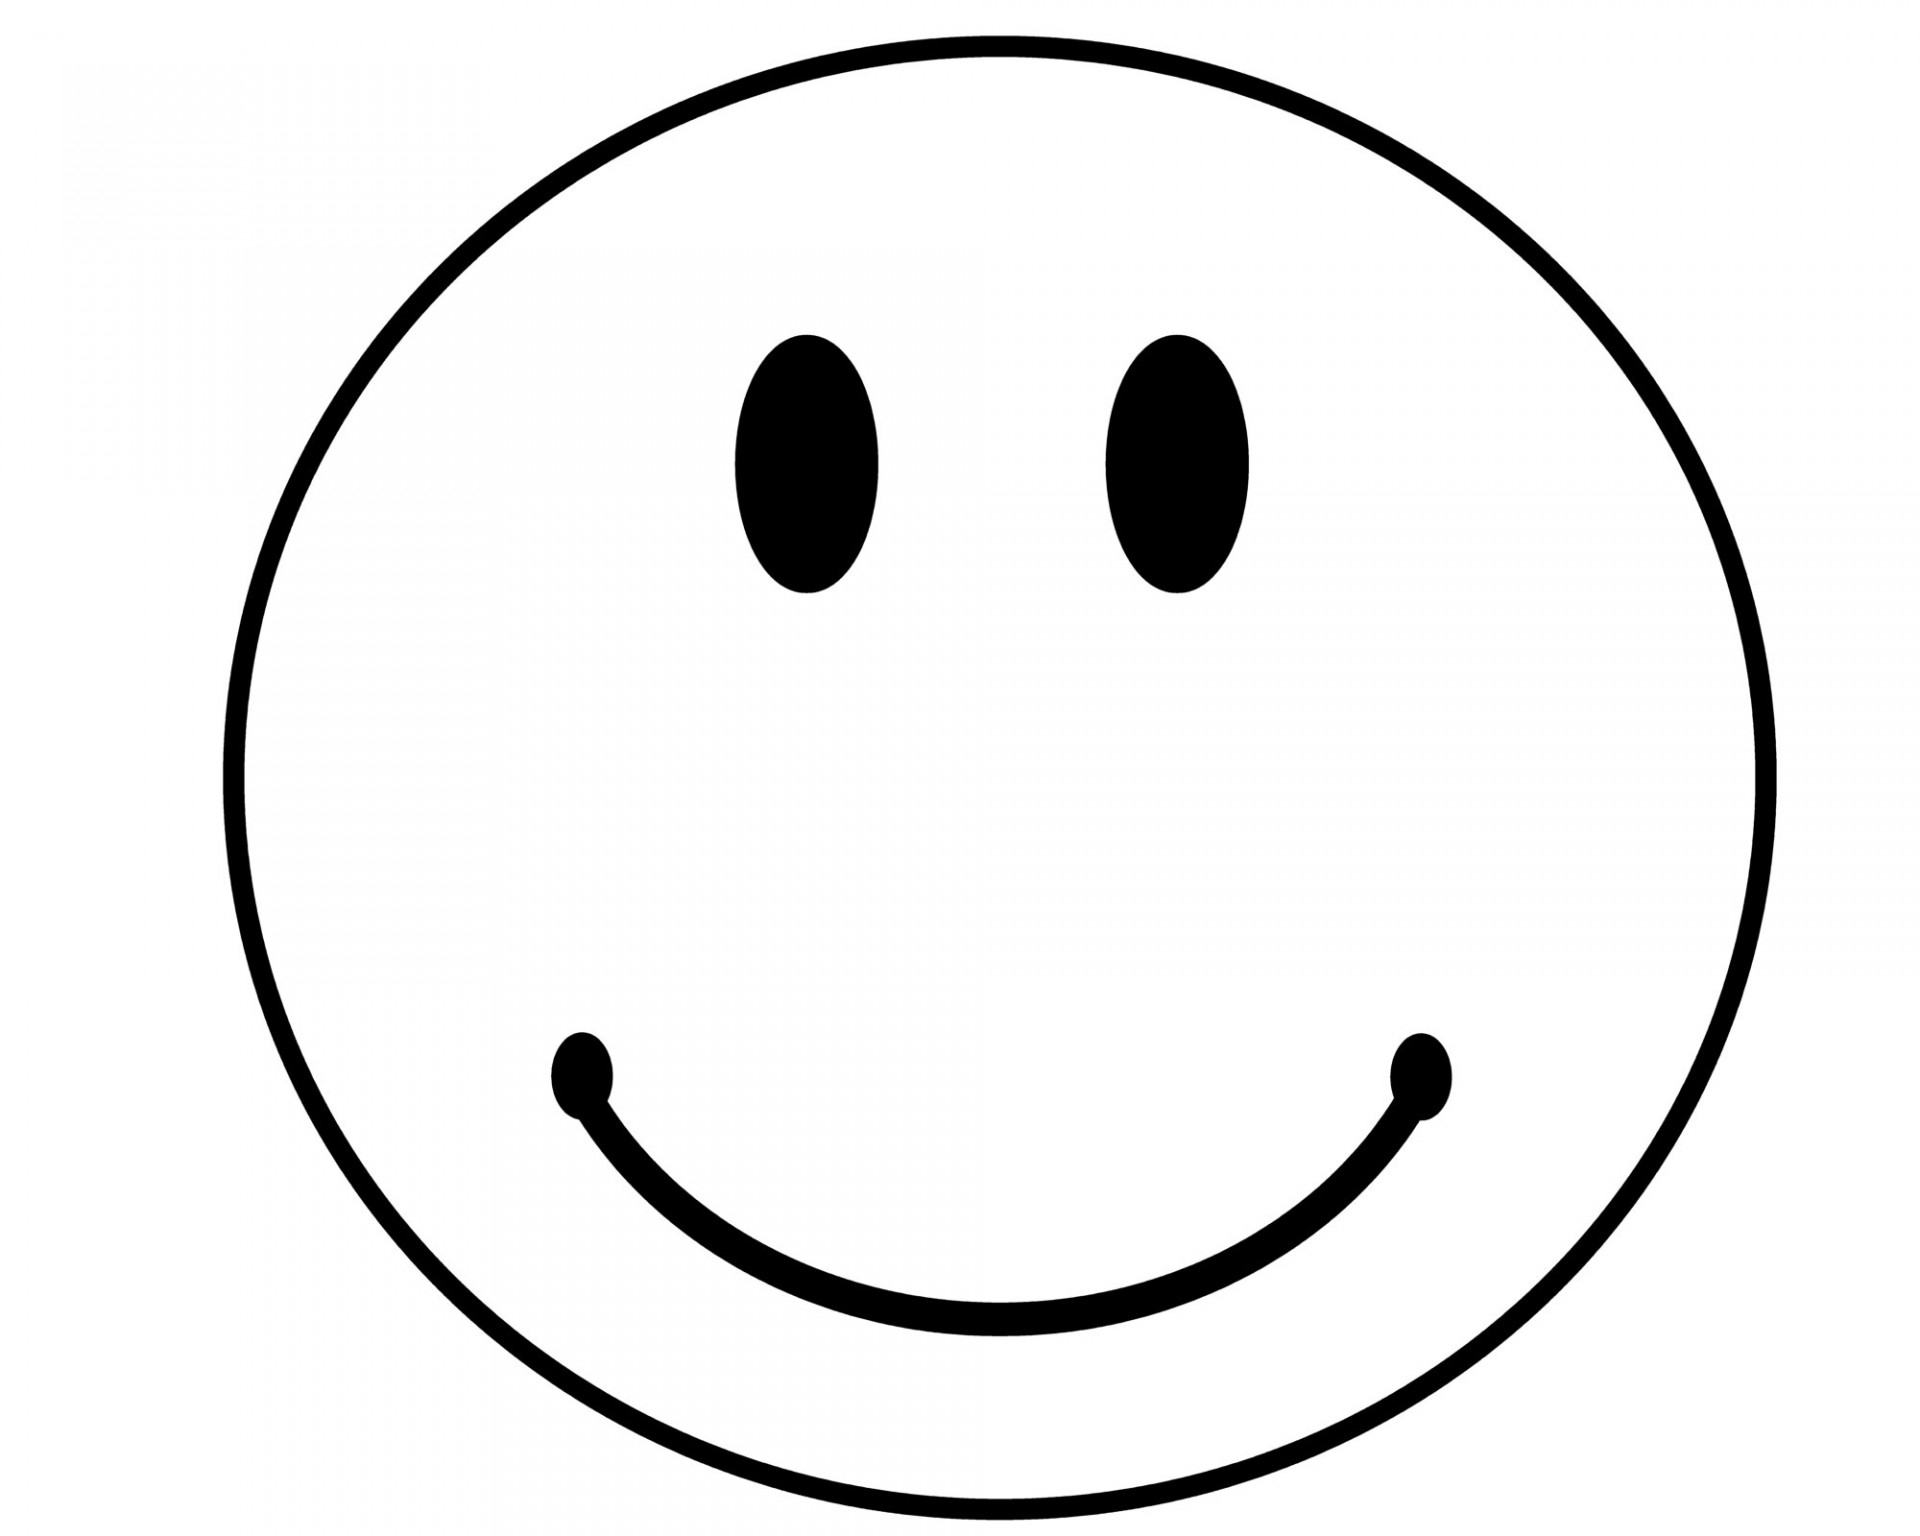 Happy face smiley face clipart 0 free images clipartwork.